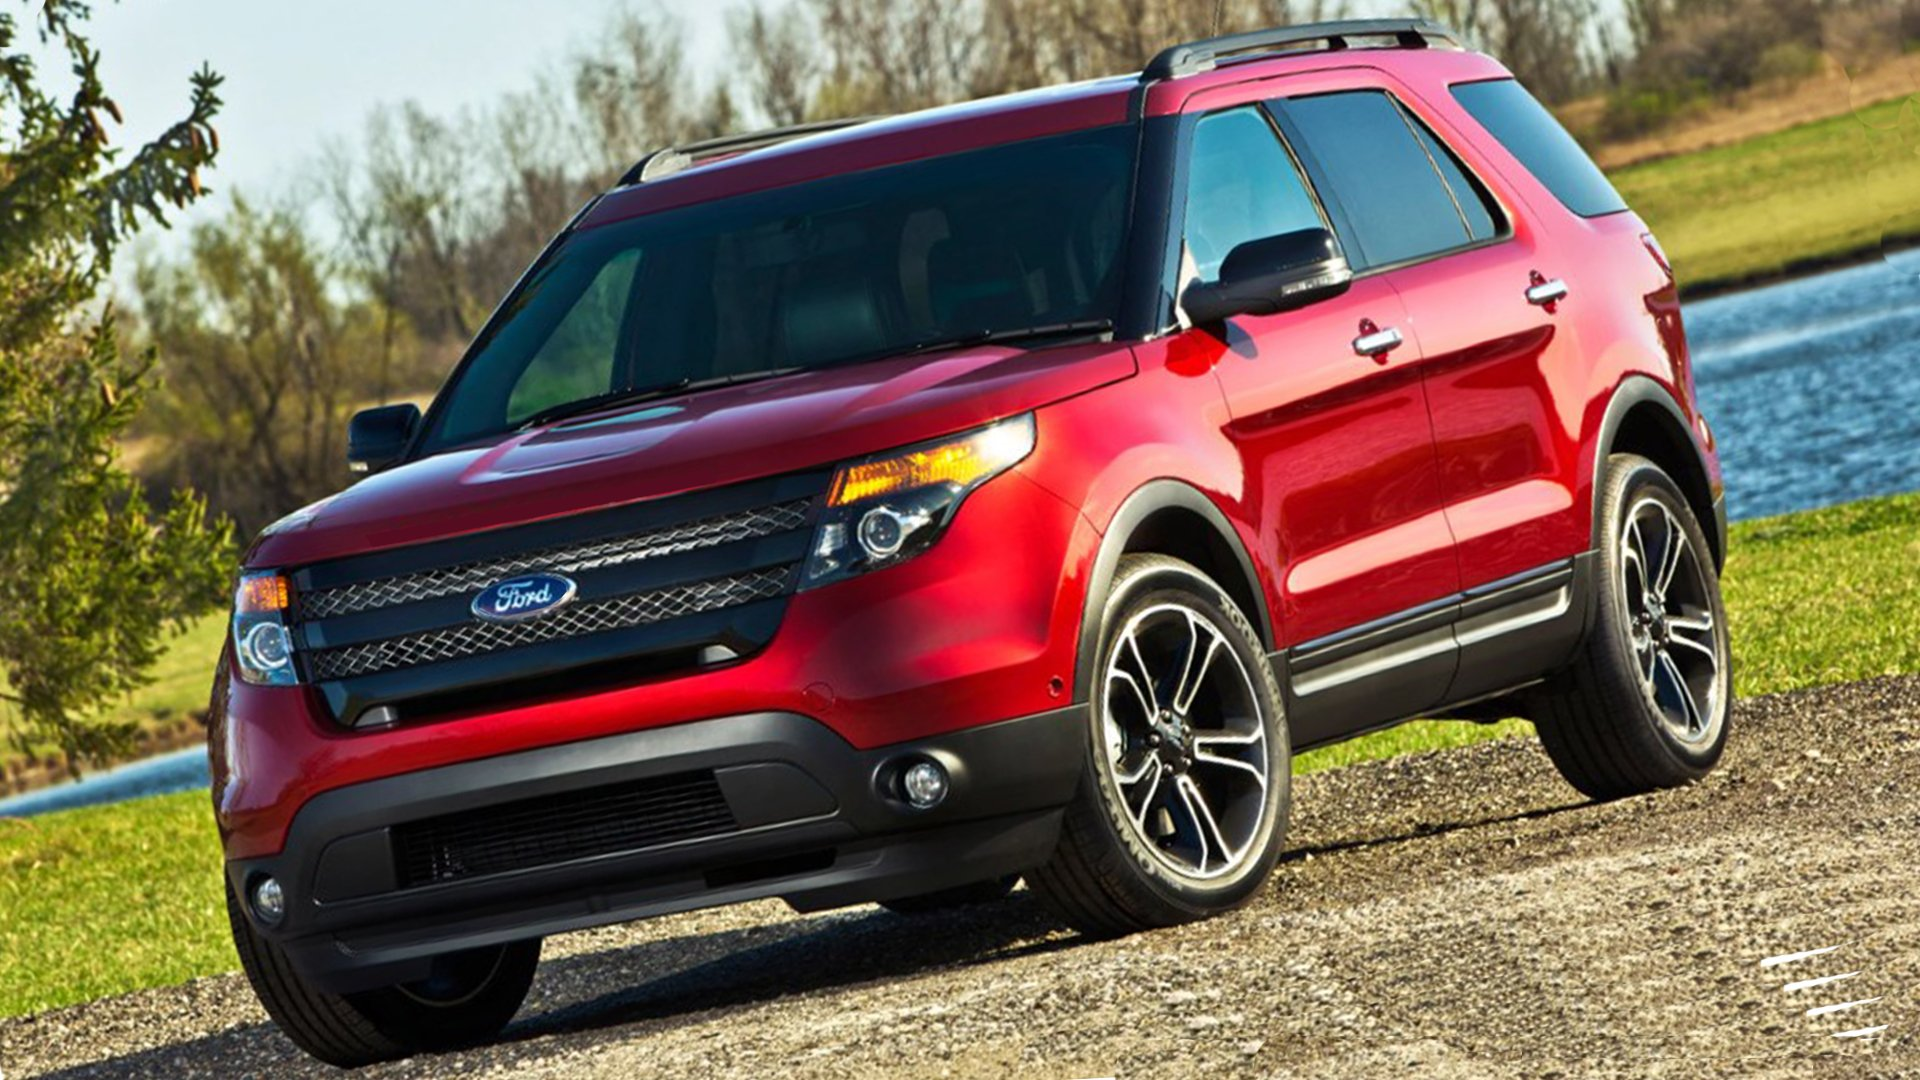 Ford Explorer Photo Gallery HD